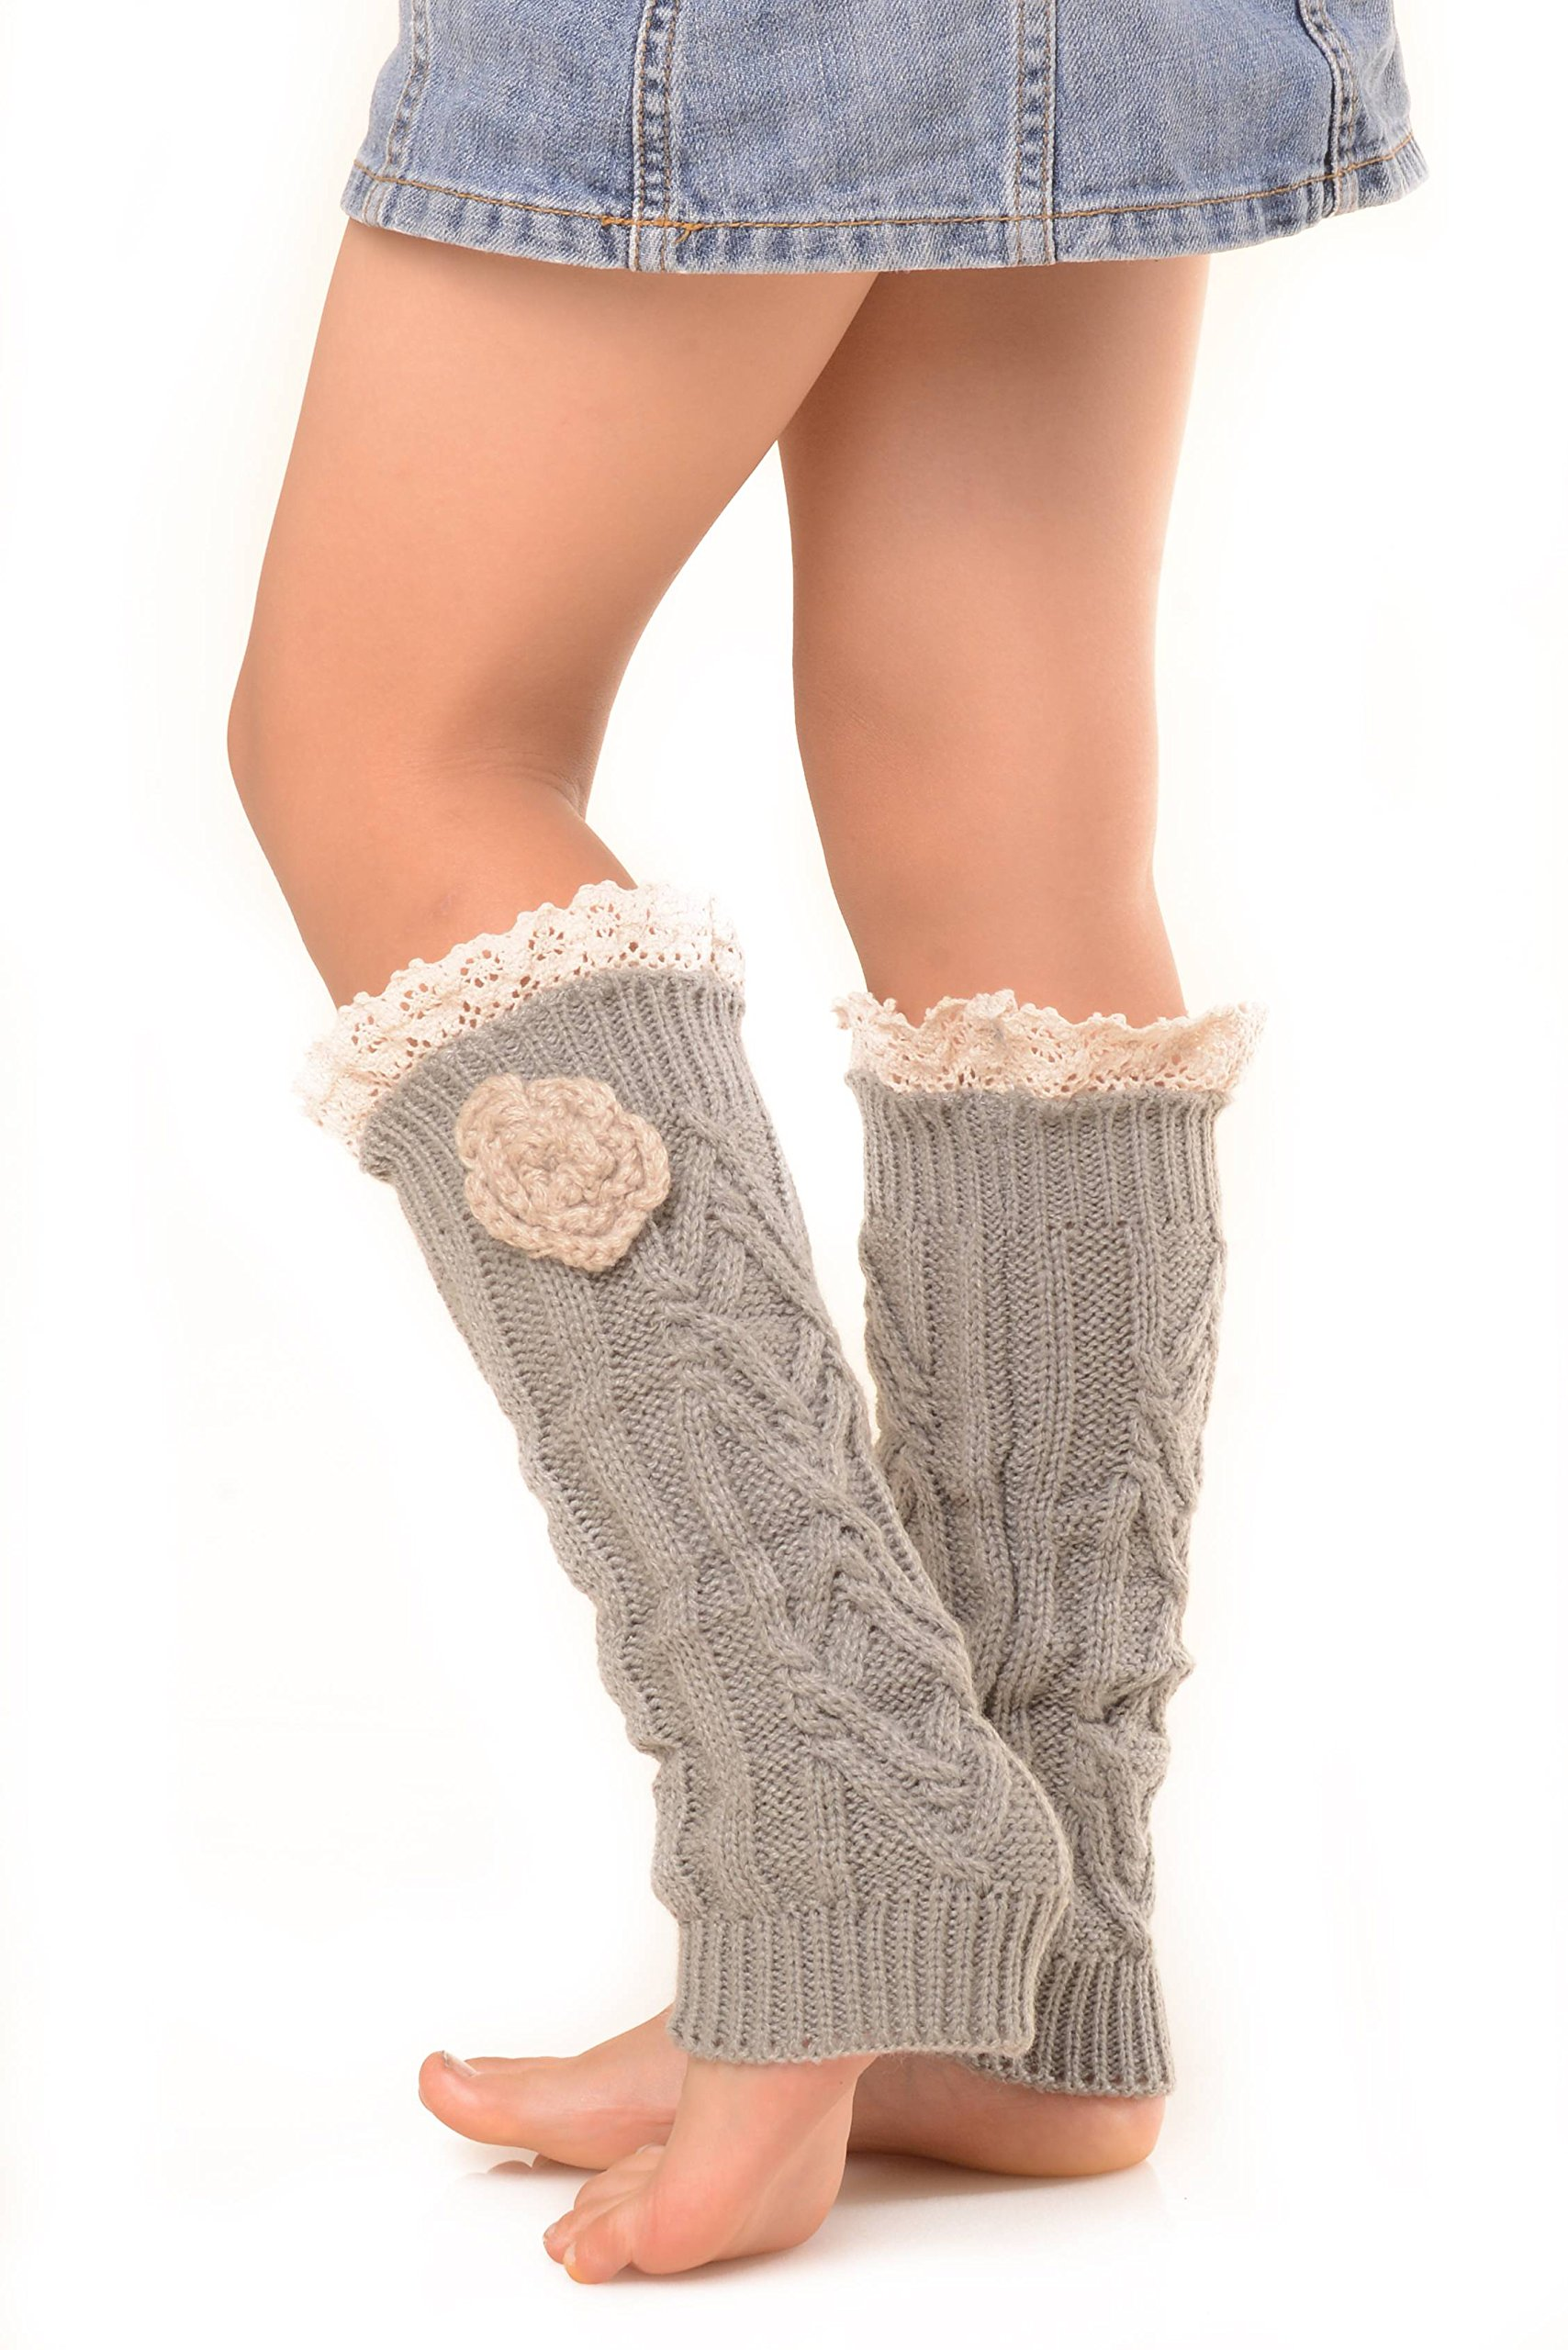 ICONOFLASH Girl's Cold Weather Leg Warmers with Floral Detail, Grey